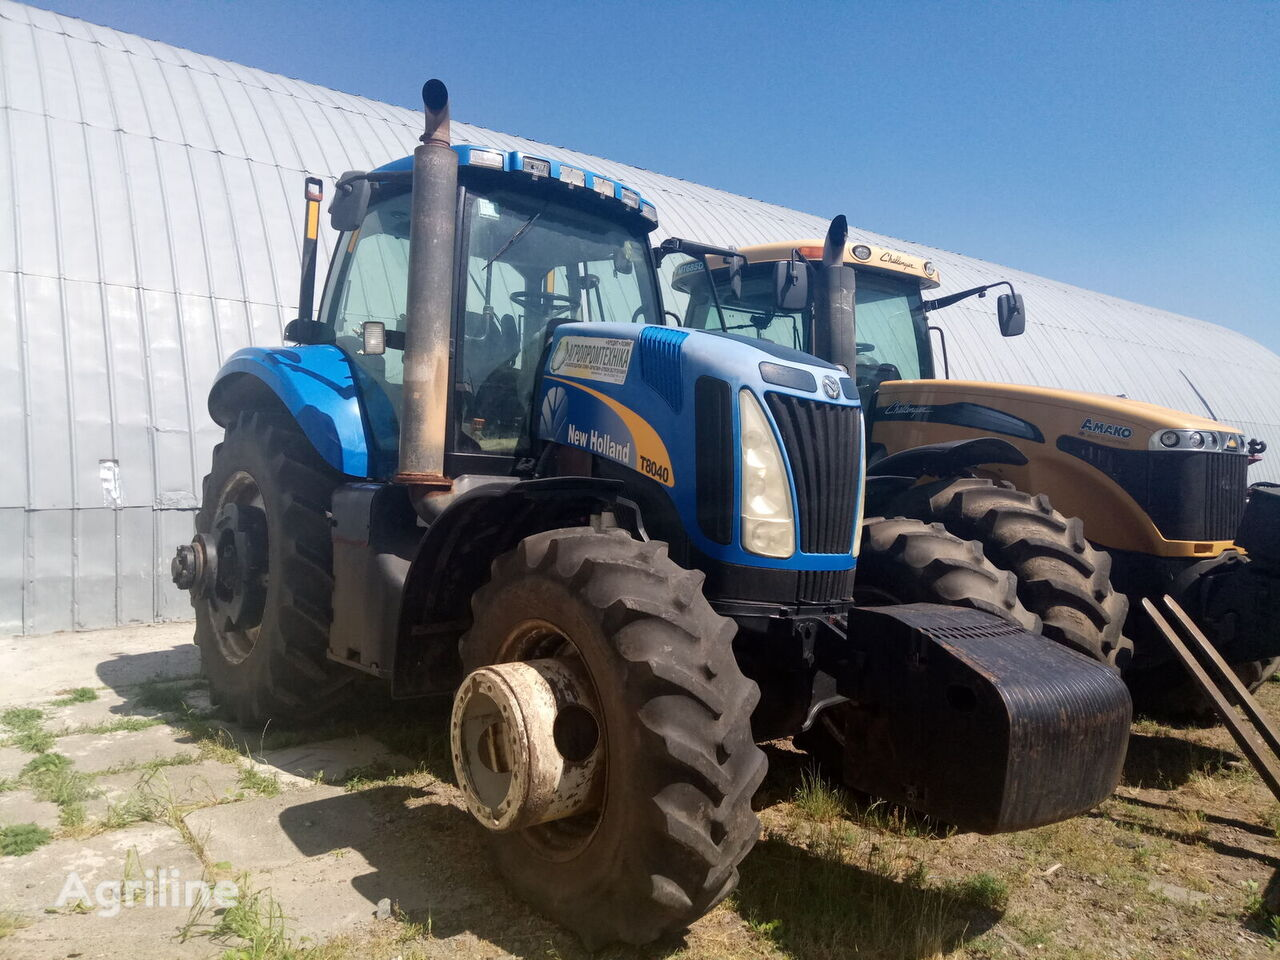 NEW HOLLAND T8.040 wheel tractor